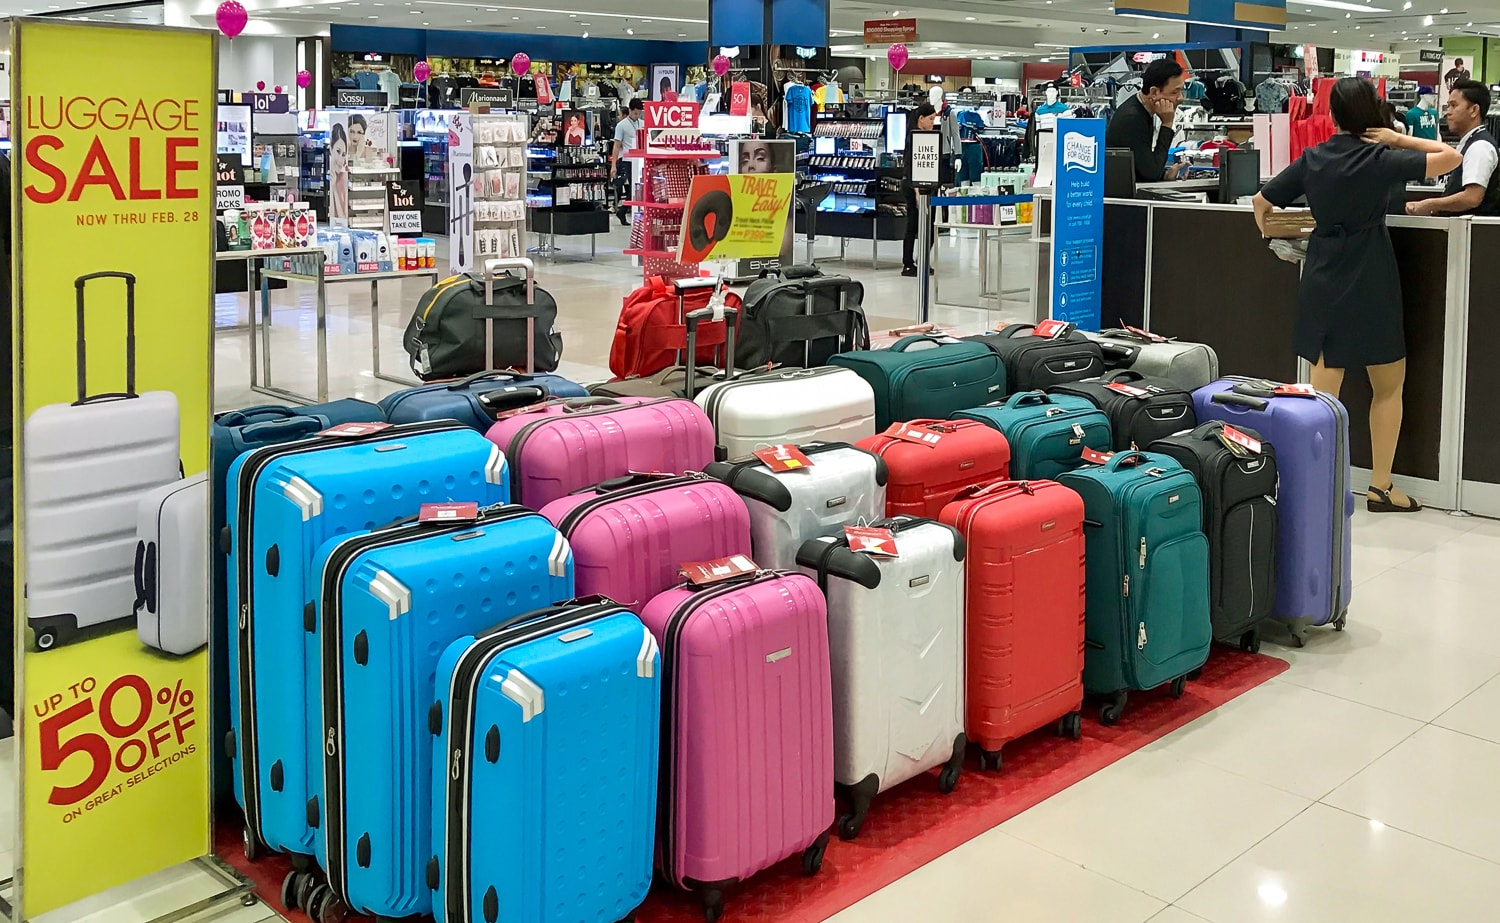 Luggage-sale-in-dept-store